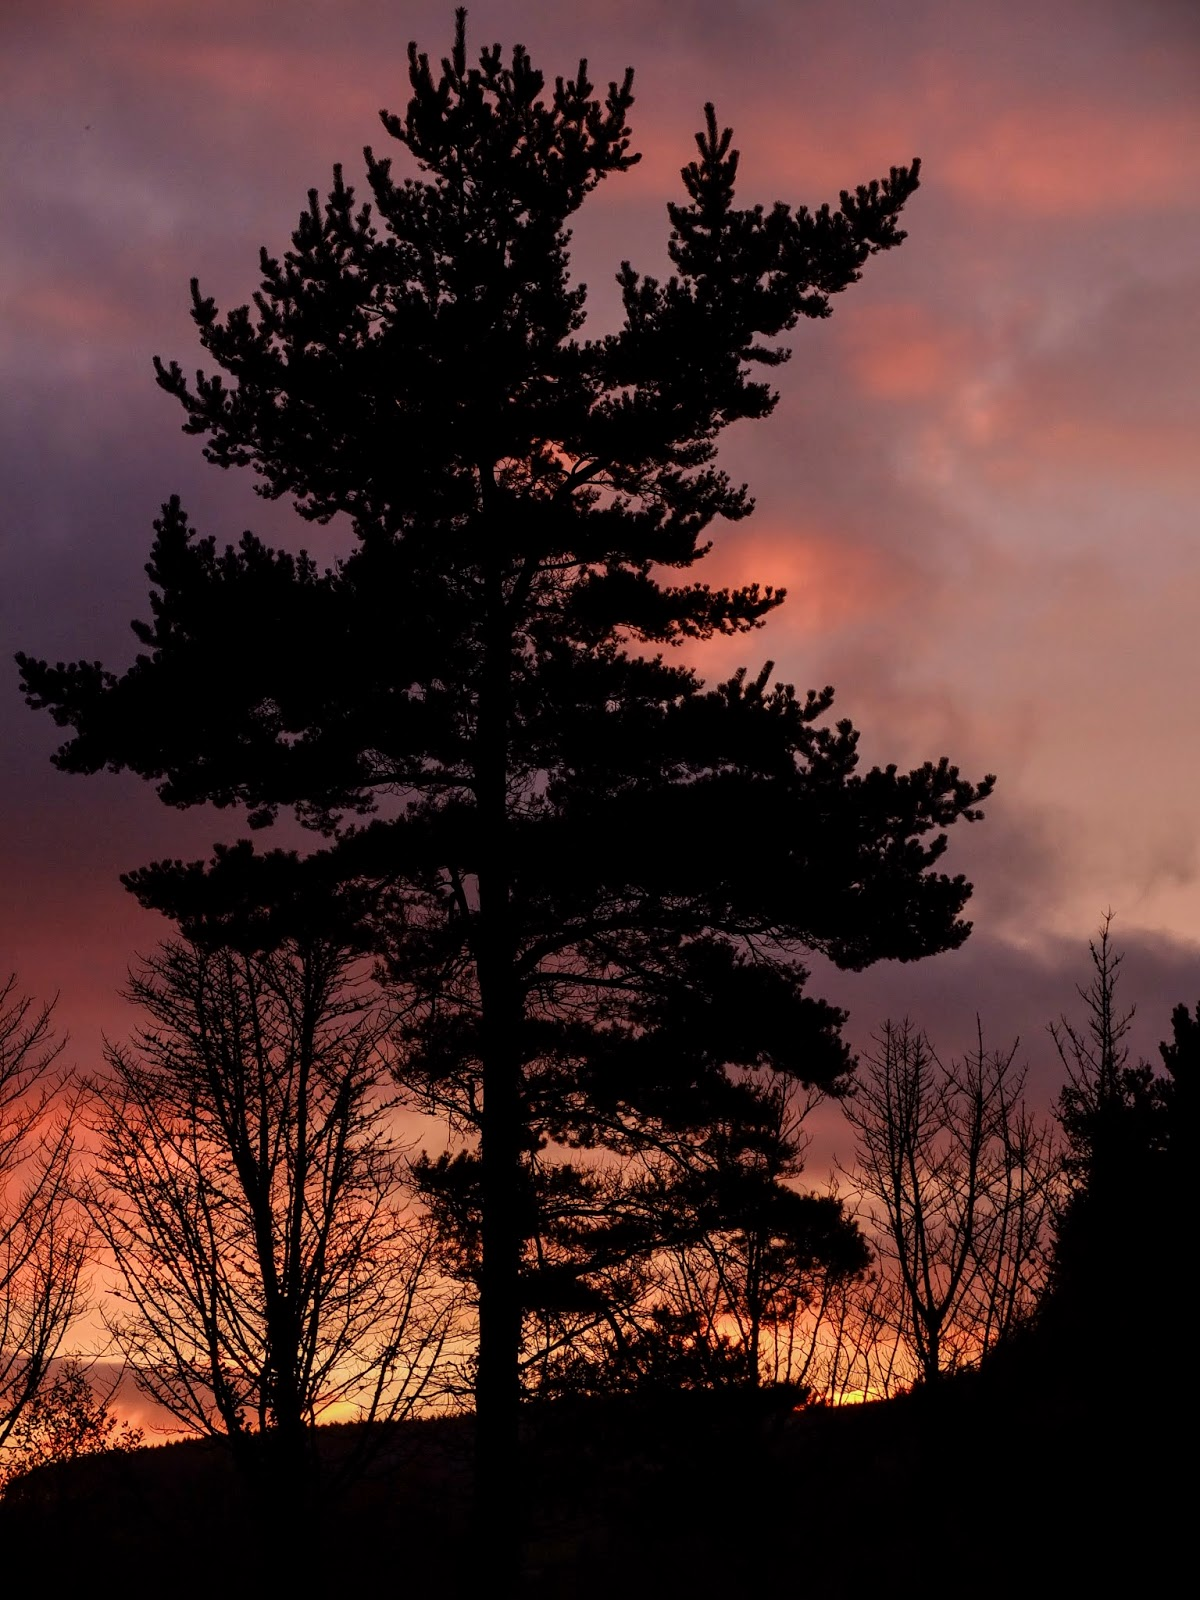 A silhouette of a conifer tree with colourful sunset clouds in the Boggeragh Mountains.